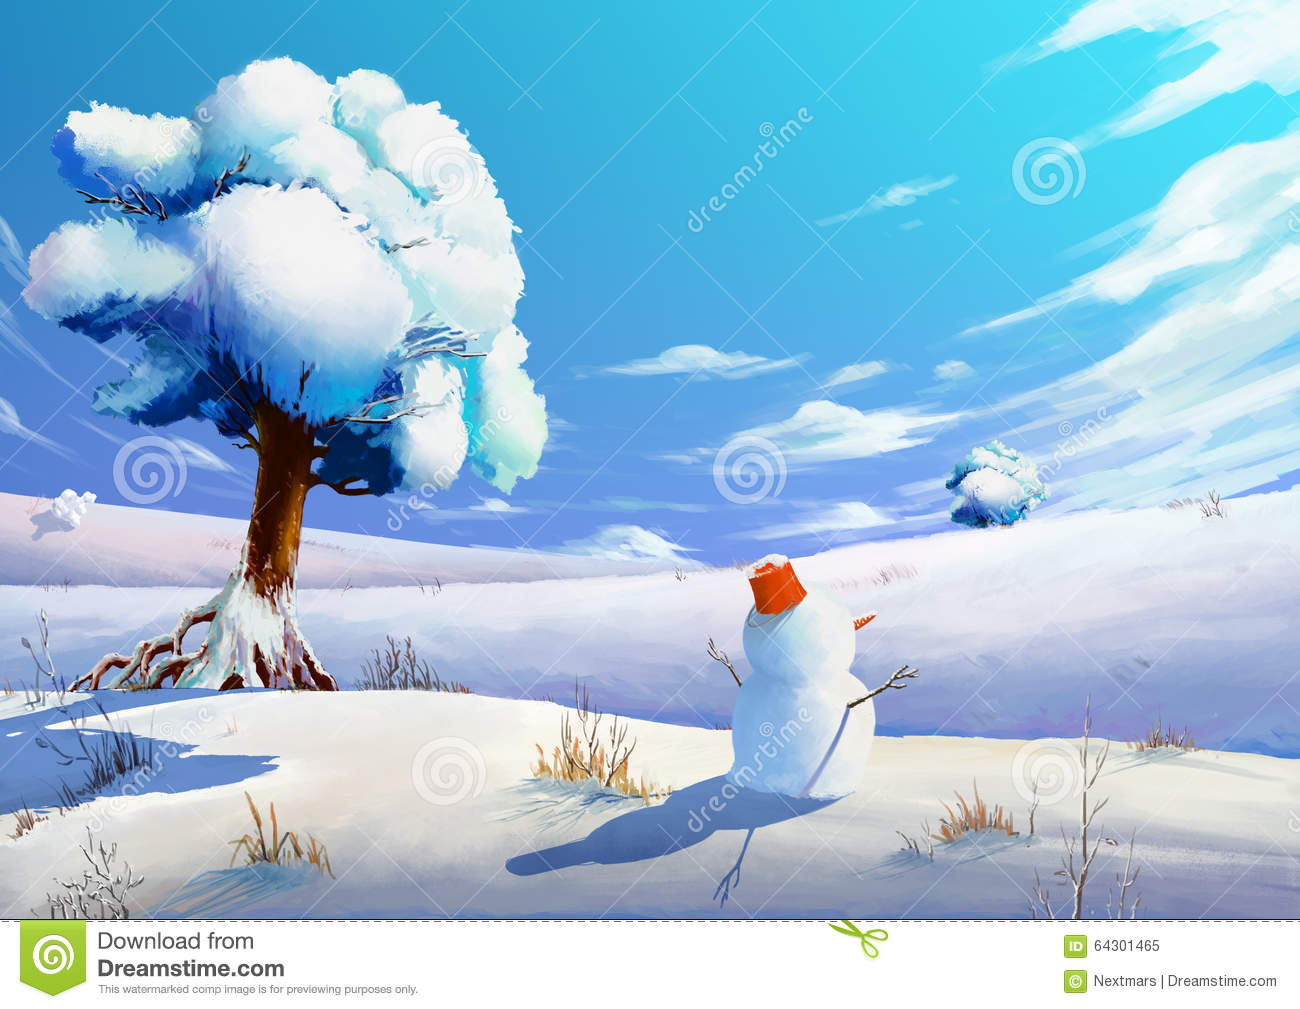 3d Stone Style Wallpaper Illustration The Winter Snow Field With Snowman Stock